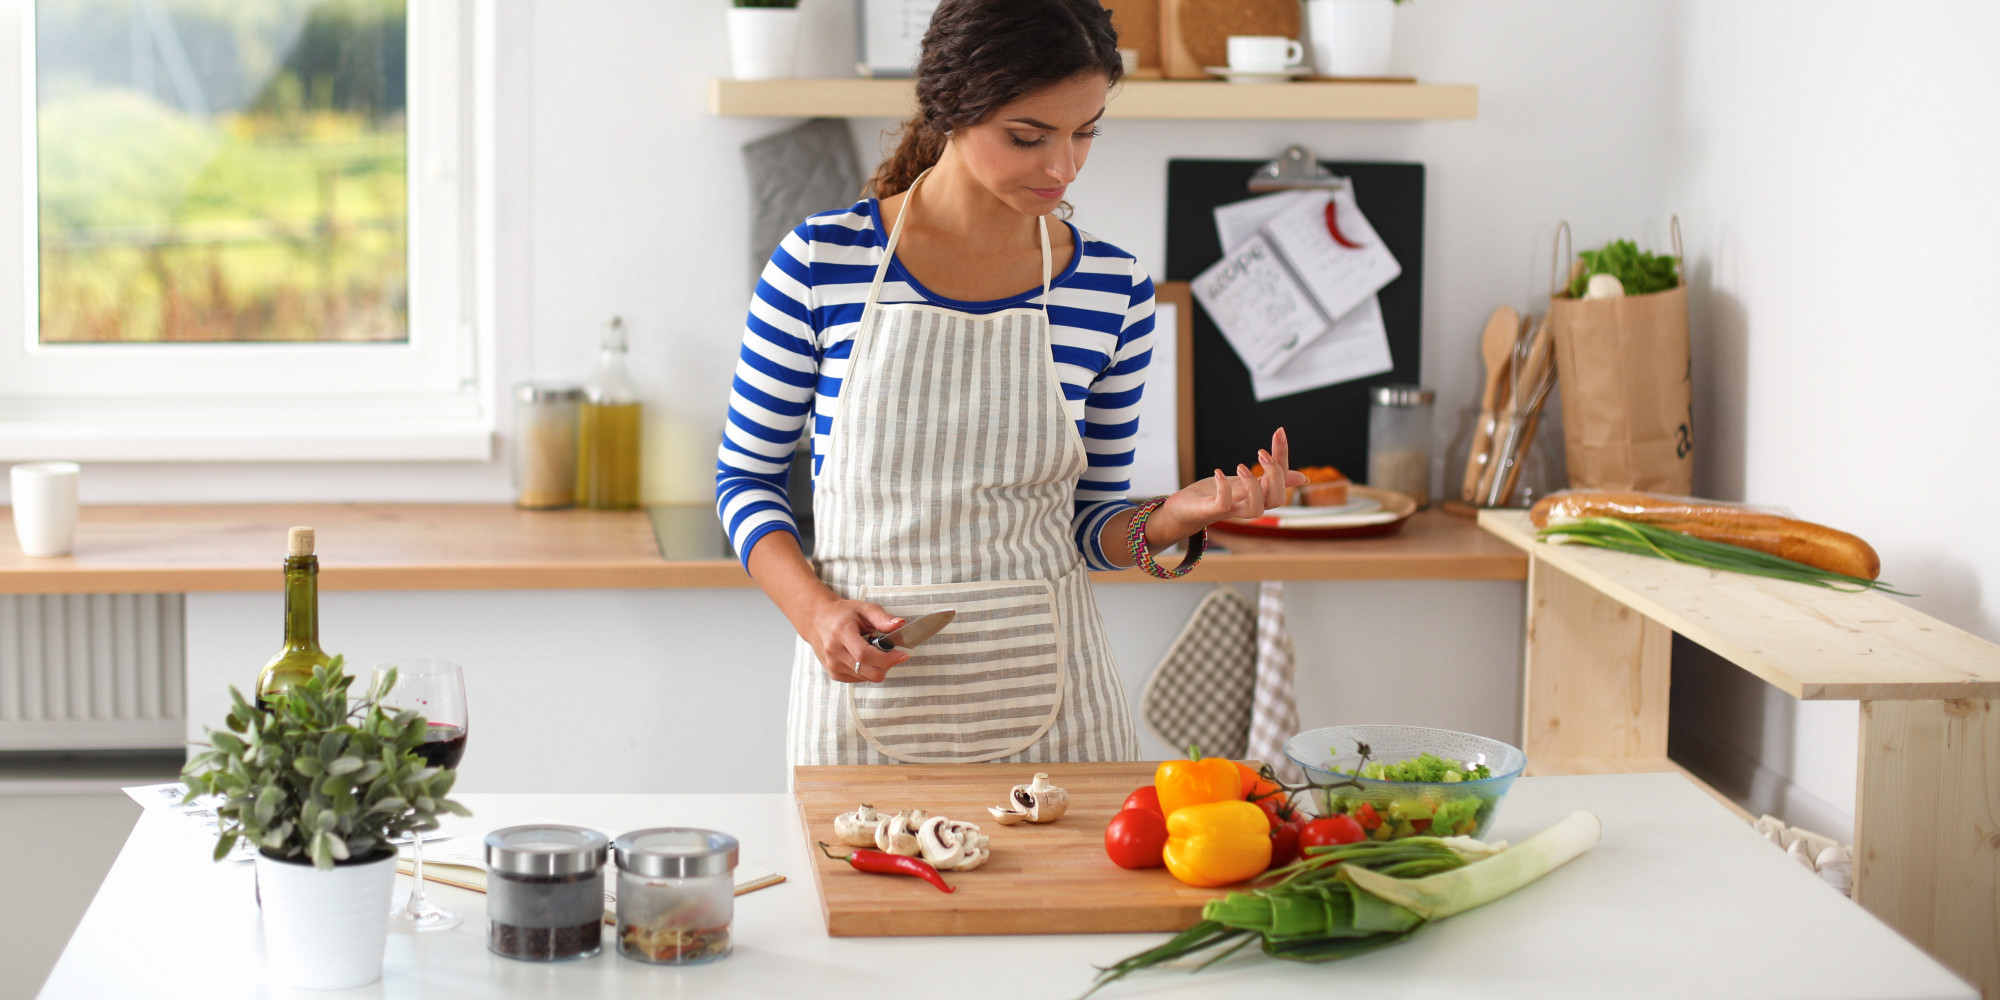 In praise of home cooking huffpost - Home cooking ...